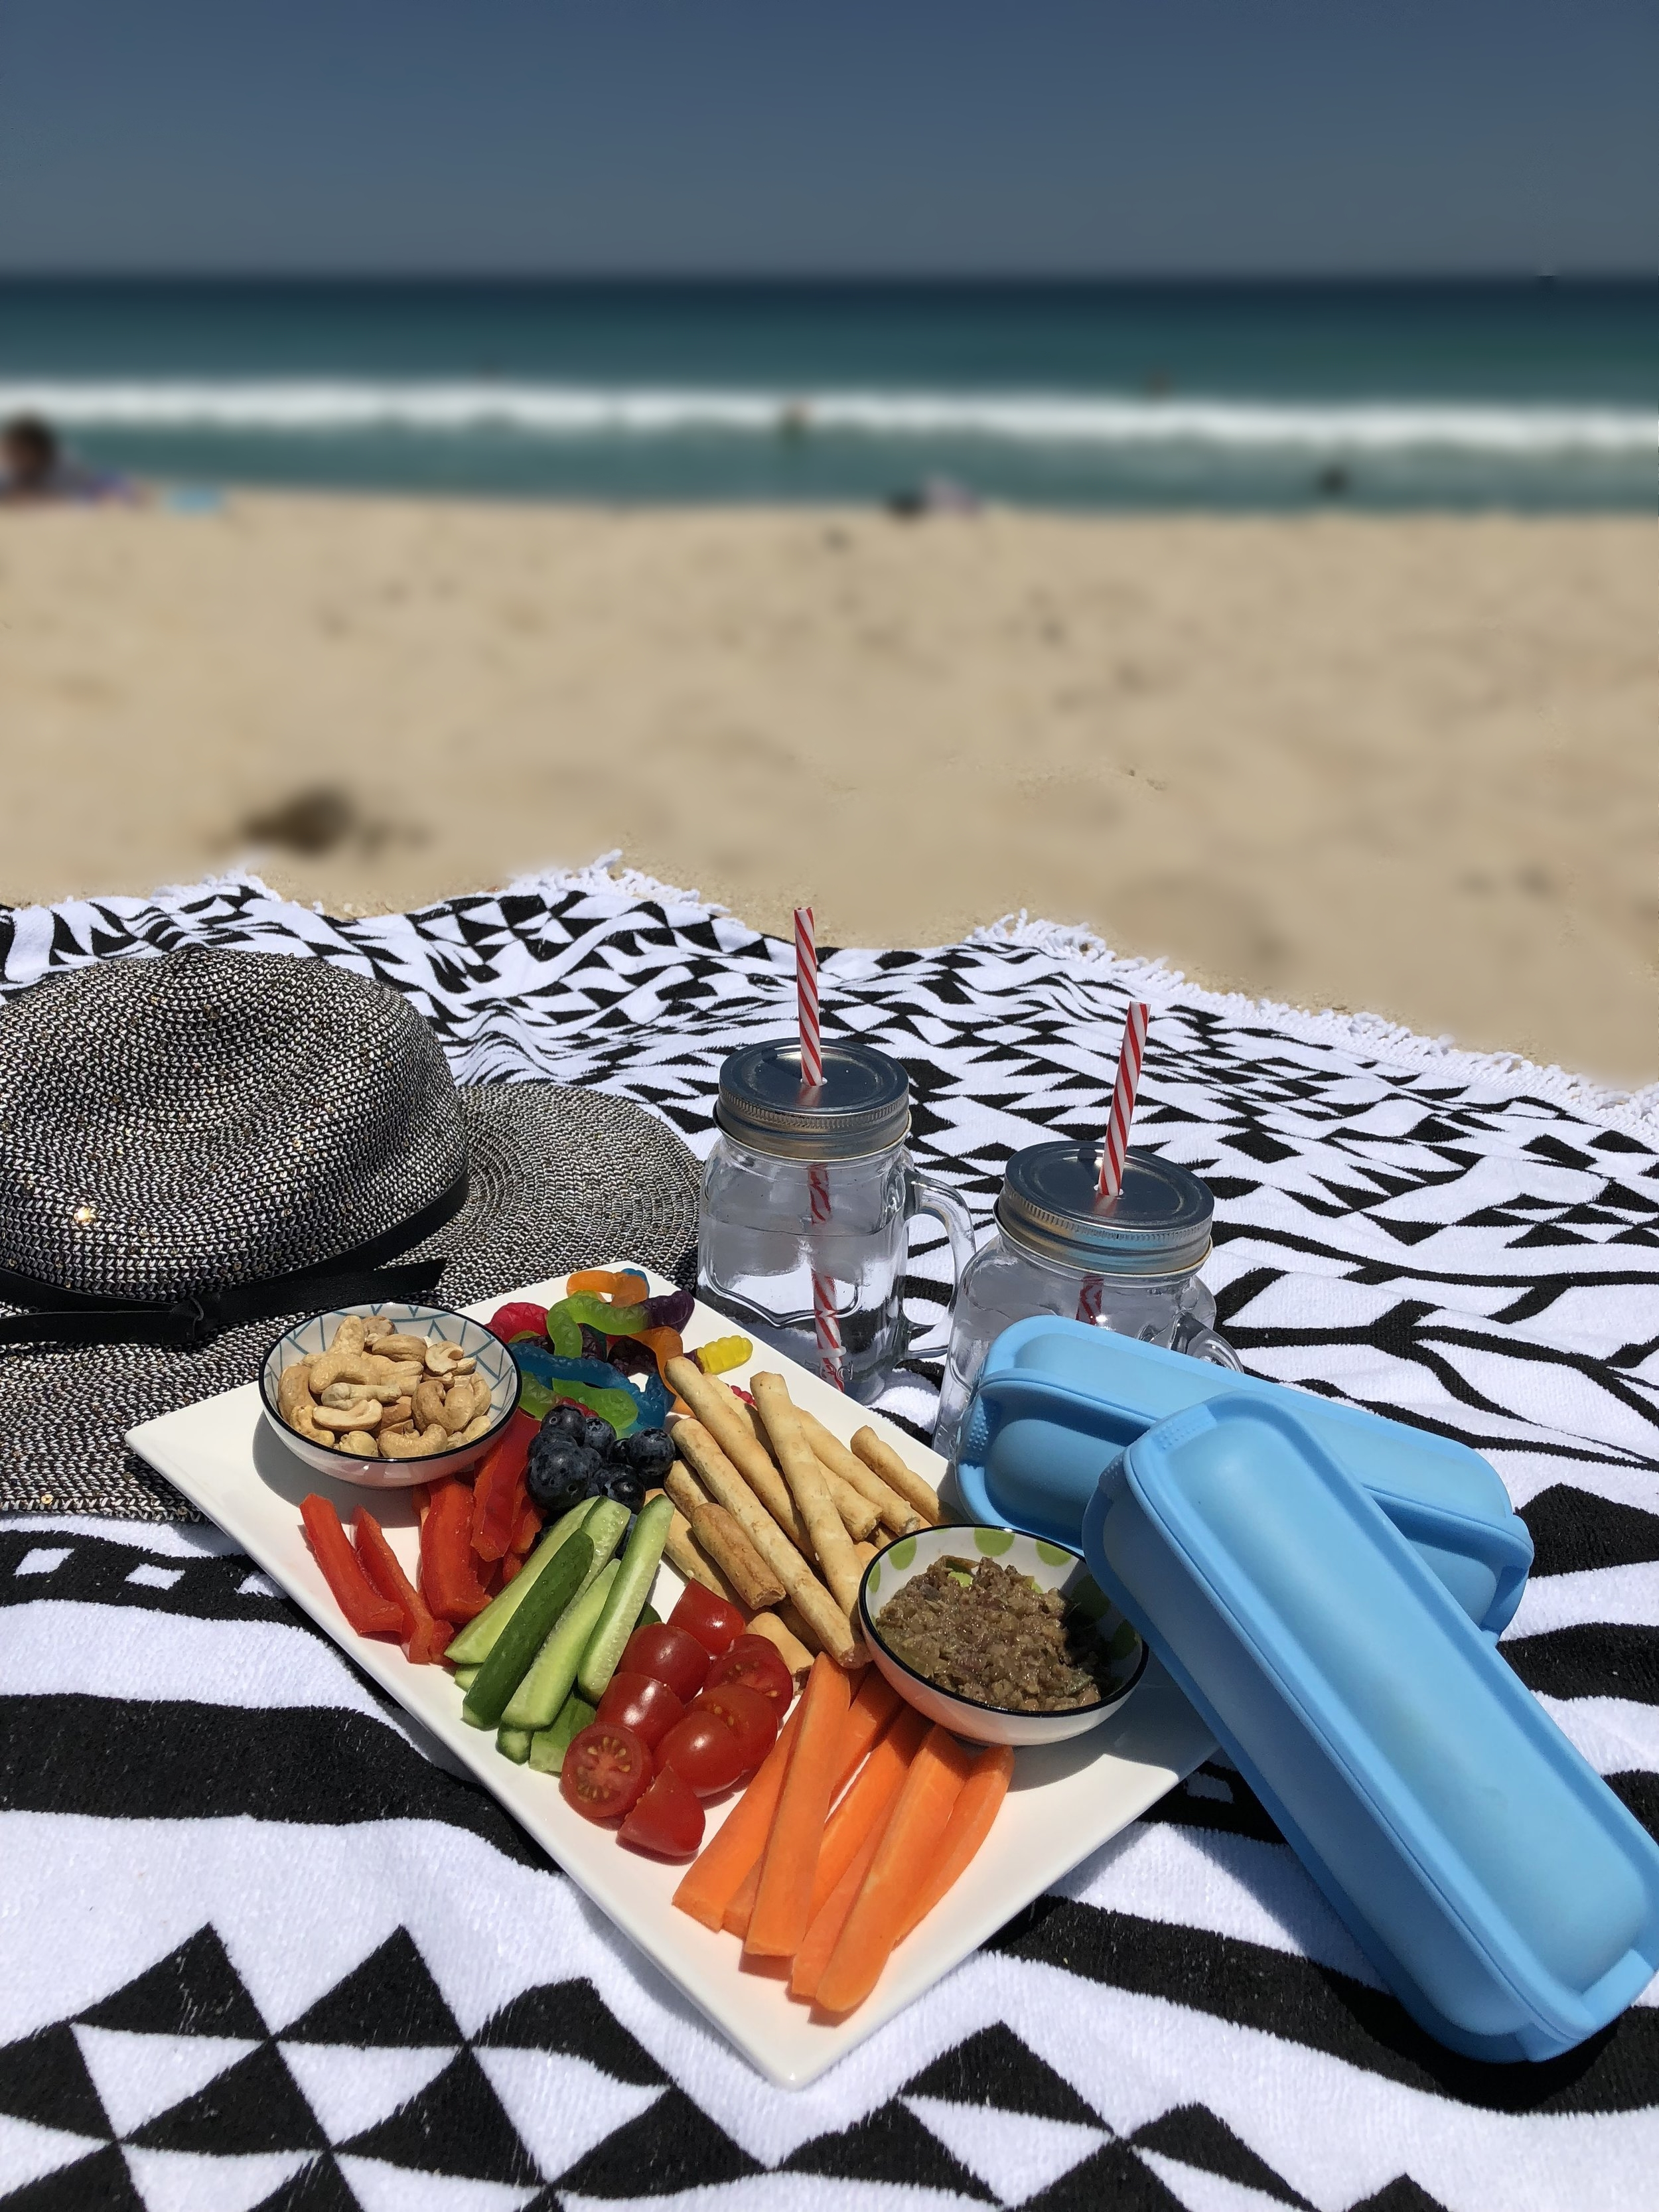 A Wrap'd lunch at the beach, followed by tasty snacks for the afternoon.